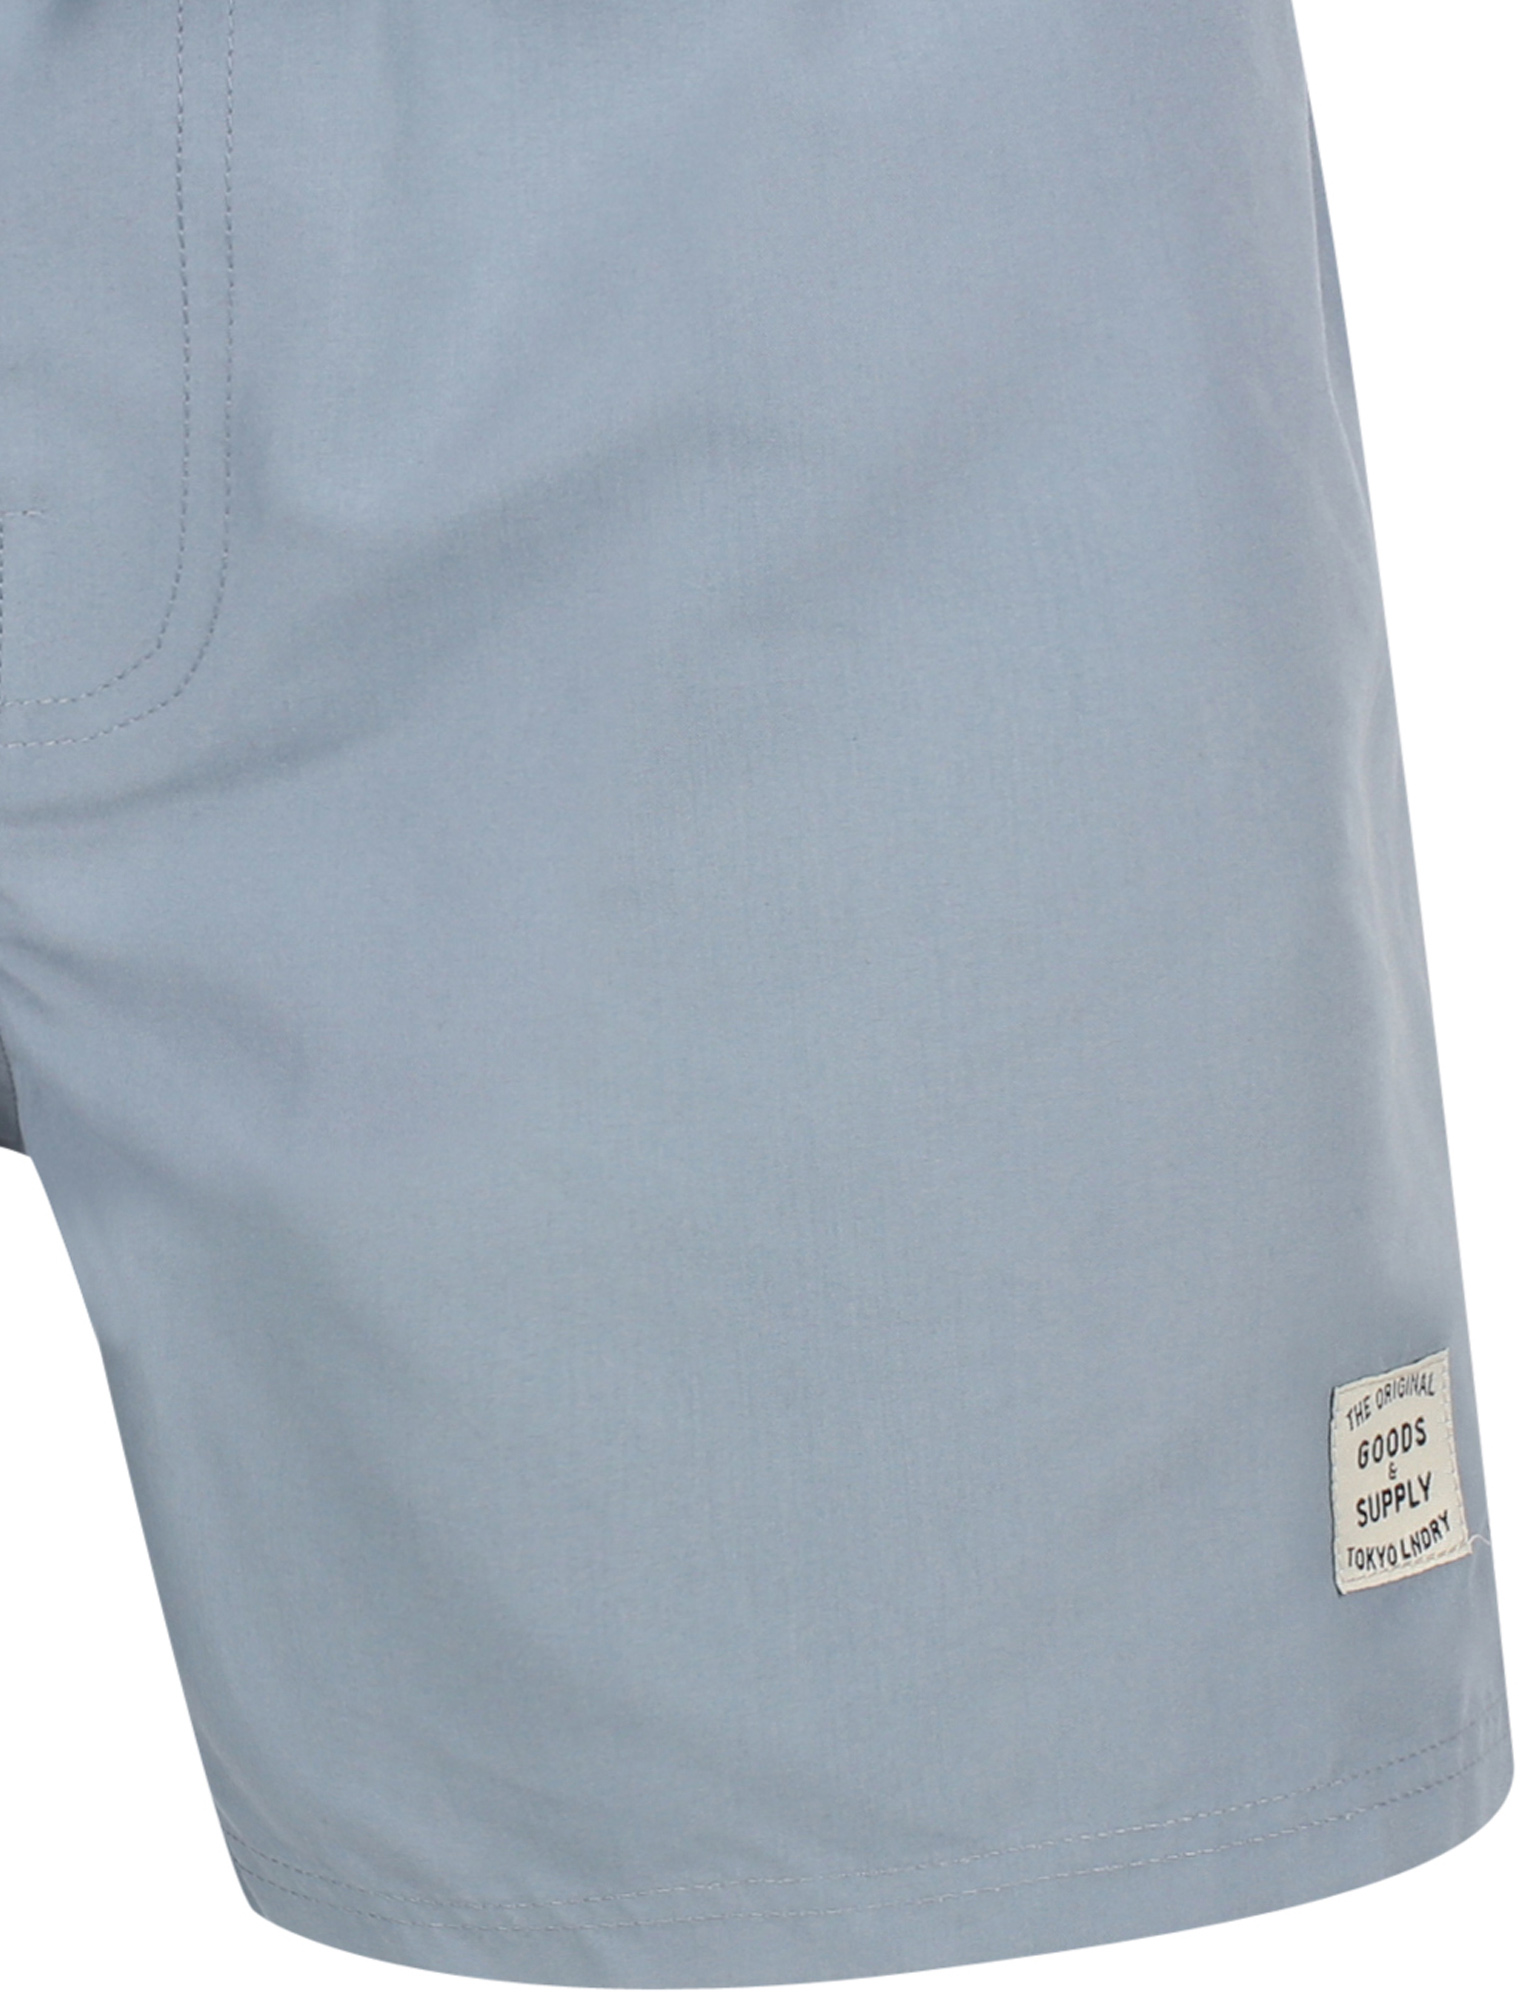 New-Mens-Tokyo-Laundry-Branded-Classic-Soft-Swim-Shorts-With-Pockets-Size-S-XXL thumbnail 4